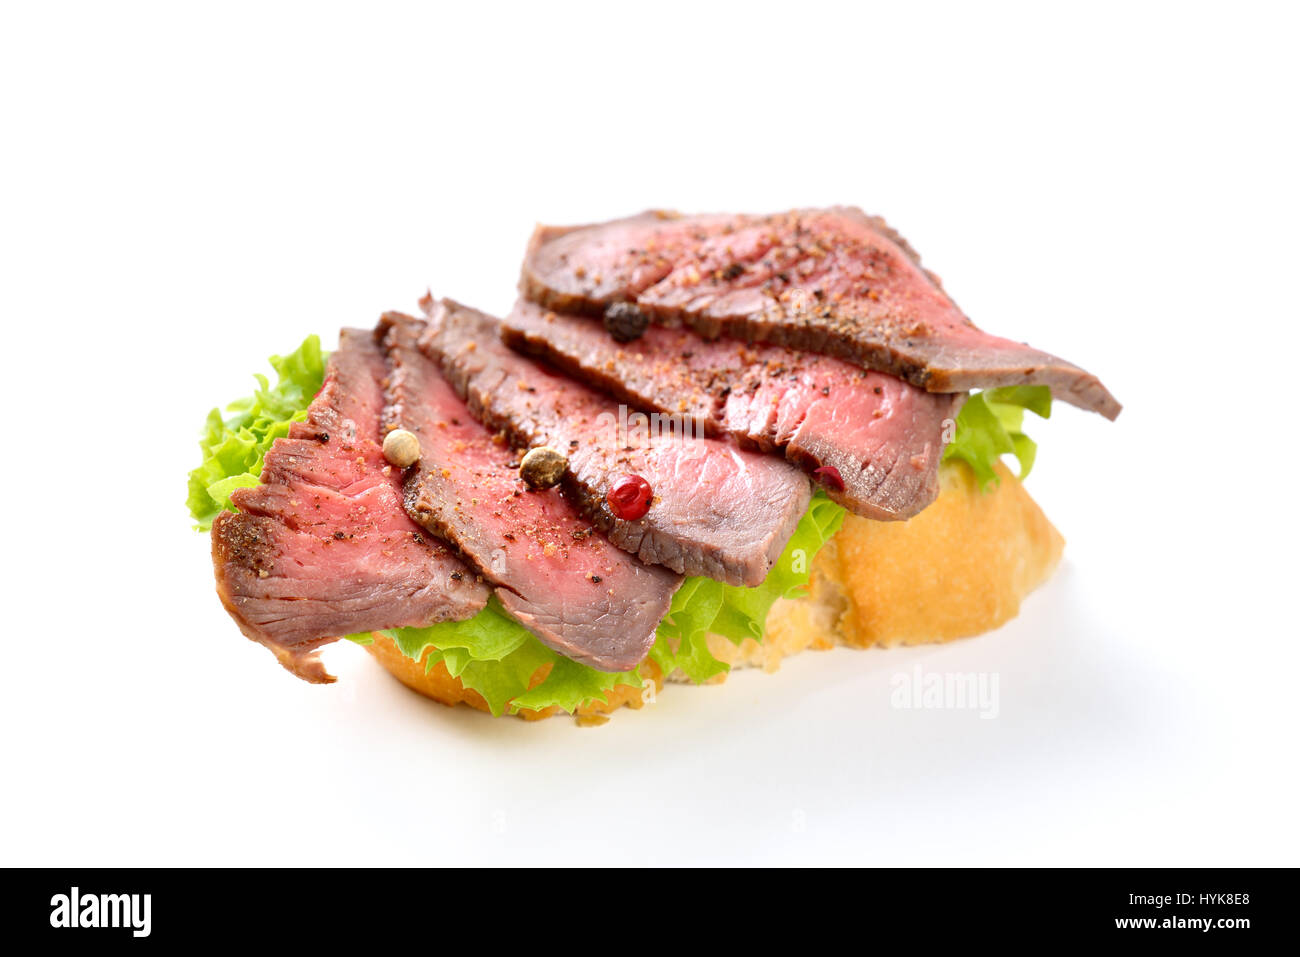 Roasted beef fillet with pepper on a slice of baguette with a leaf of salad - Stock Image